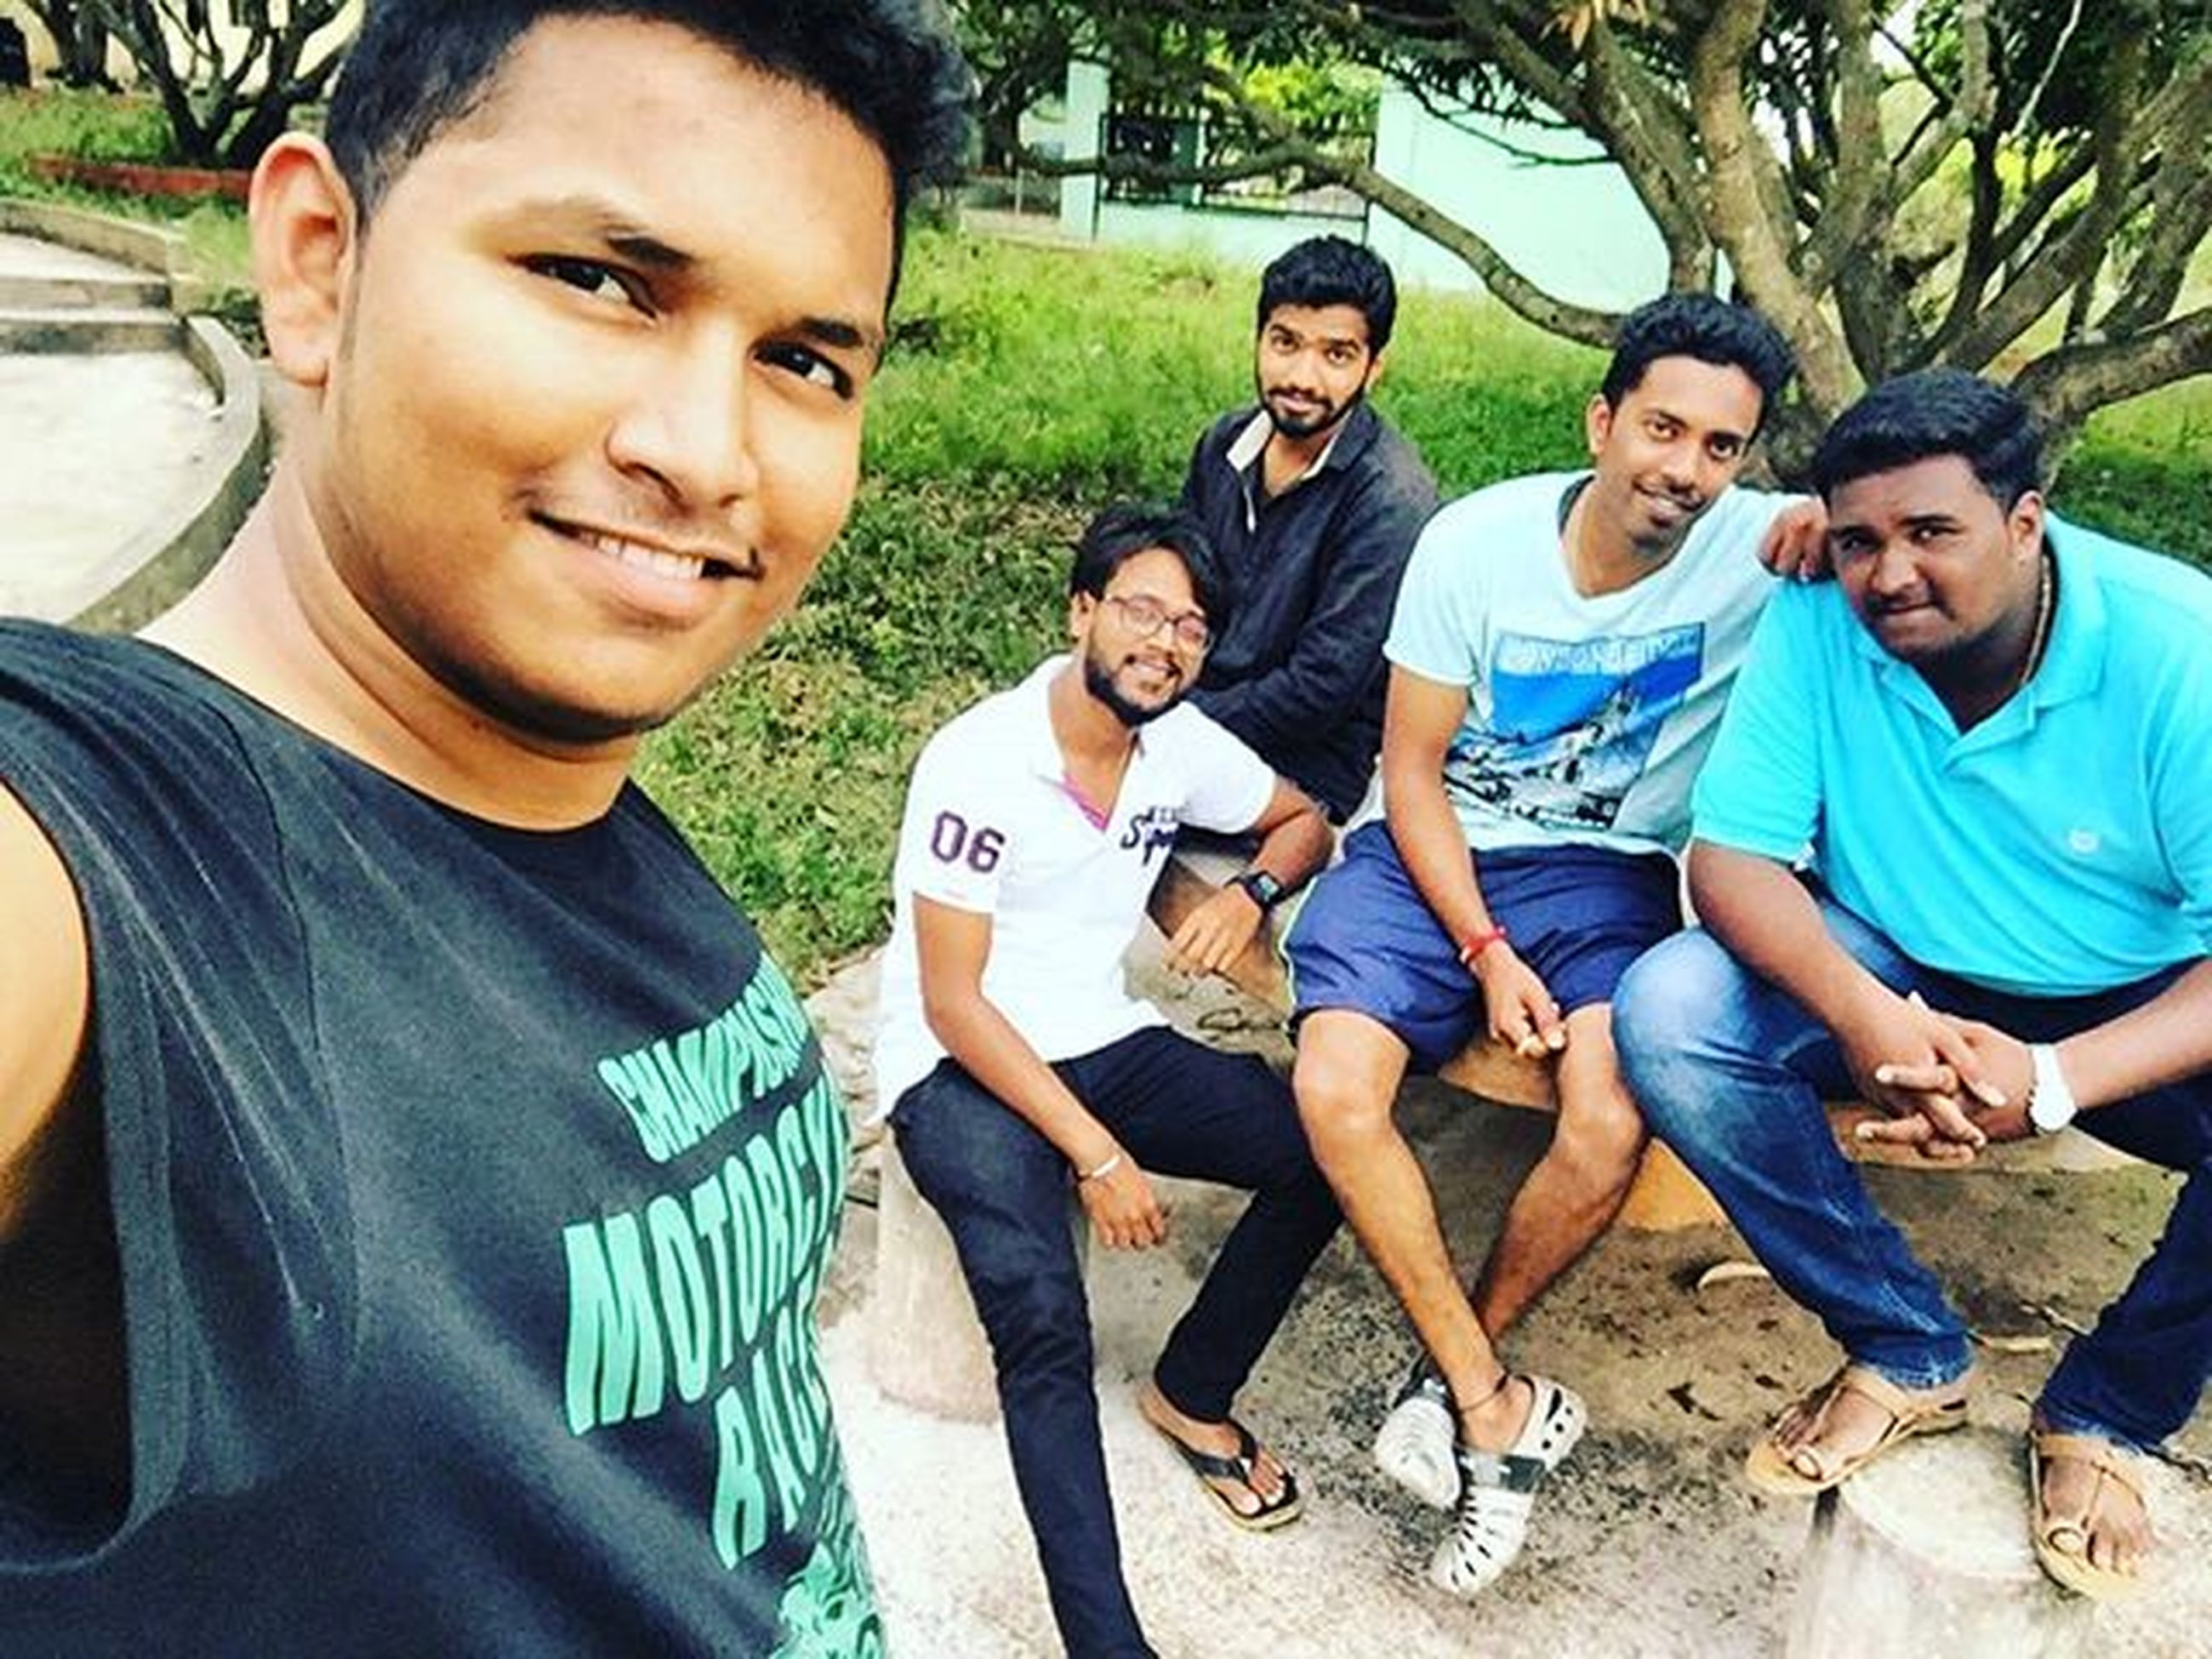 togetherness, bonding, lifestyles, person, leisure activity, love, happiness, smiling, friendship, portrait, casual clothing, looking at camera, front view, boys, family, young men, childhood, fun